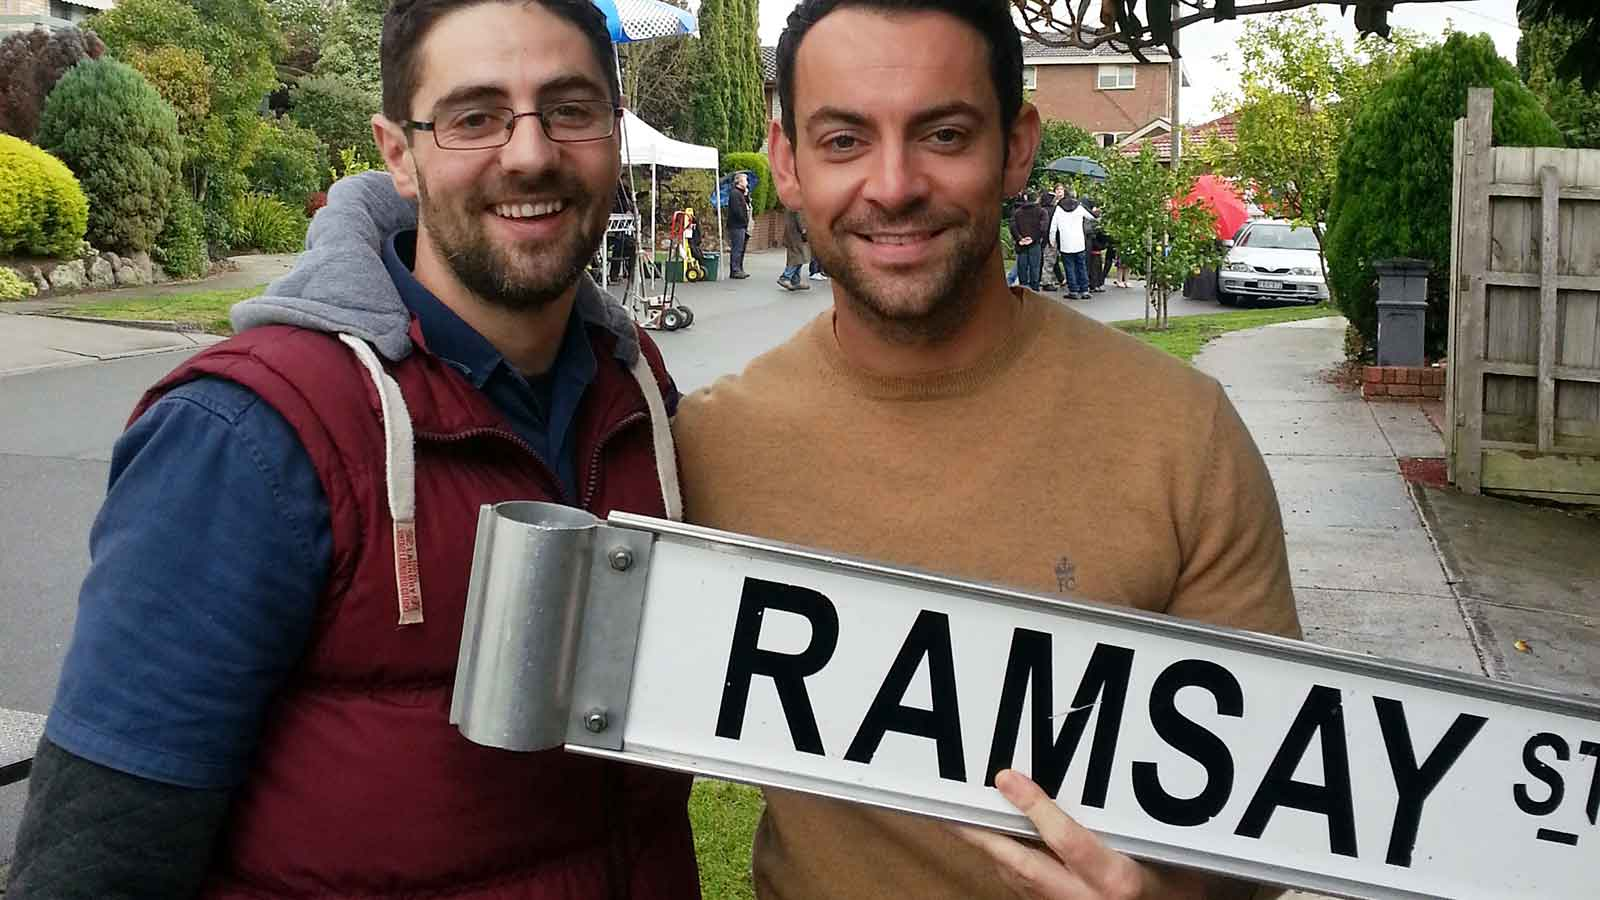 Neighbours Tour-Ramsay St